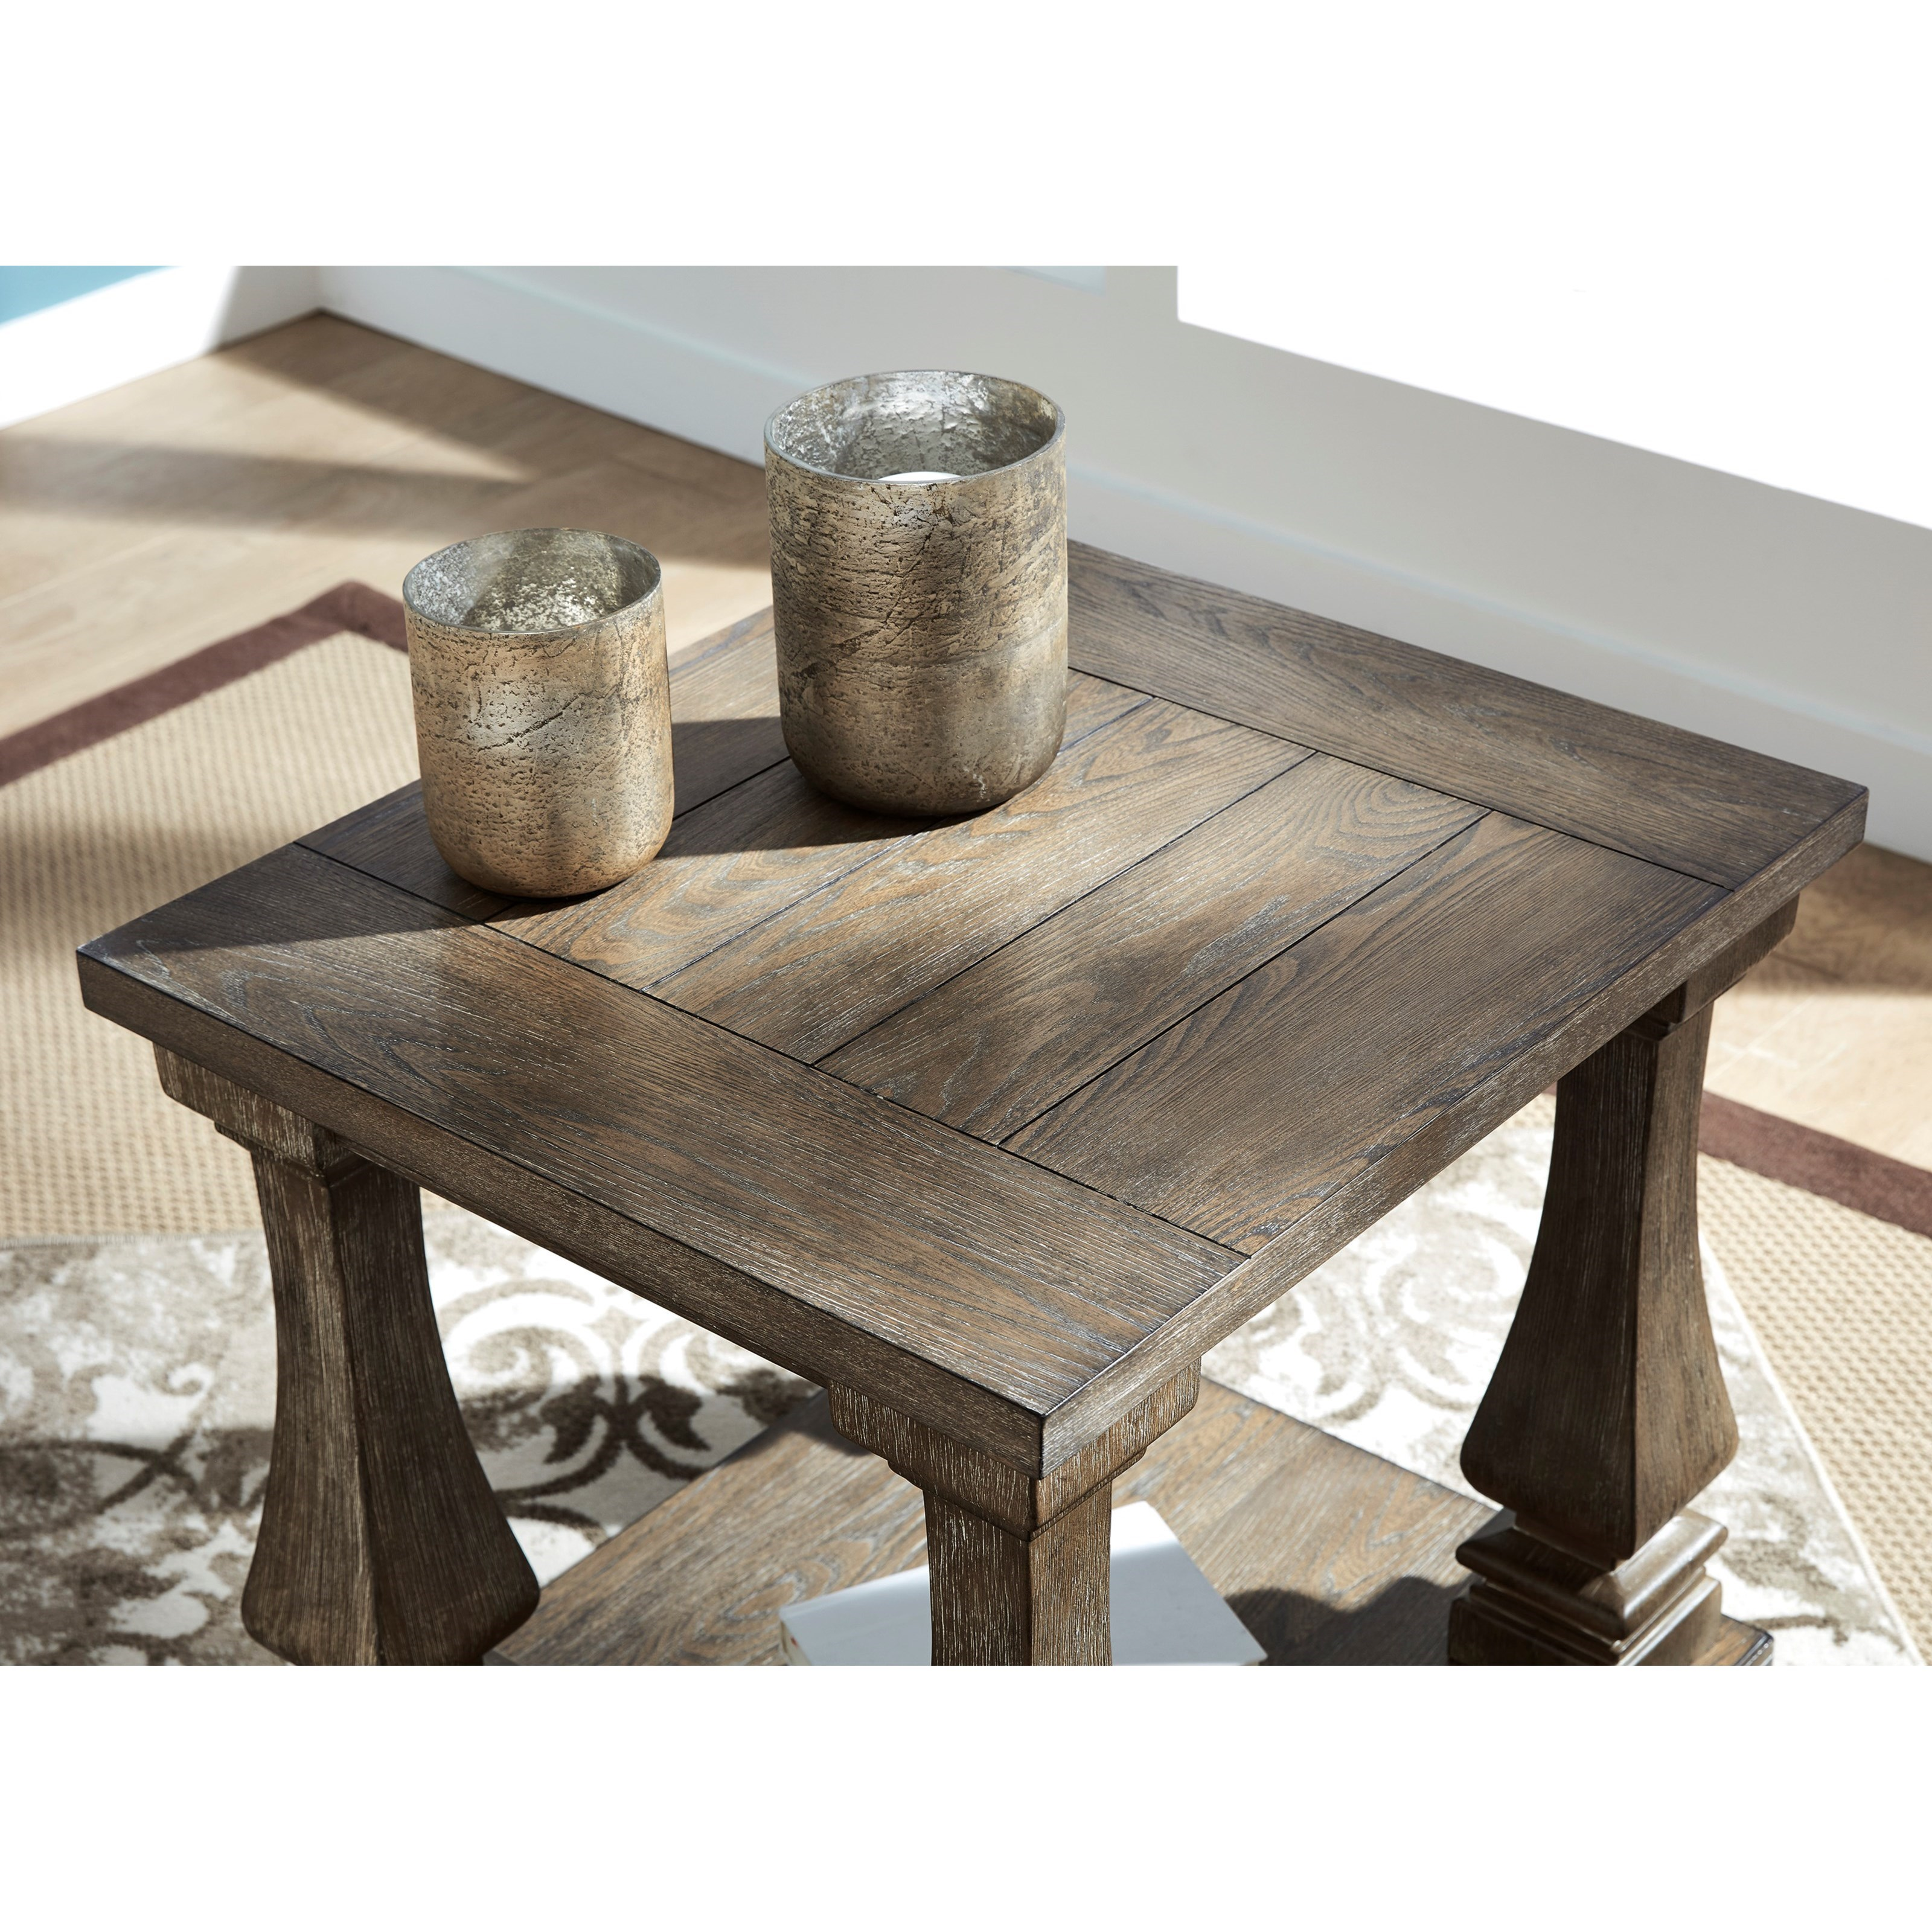 Balustrade Coffee Table Legs Canada: Signature Design By Ashley Johnelle Transitional